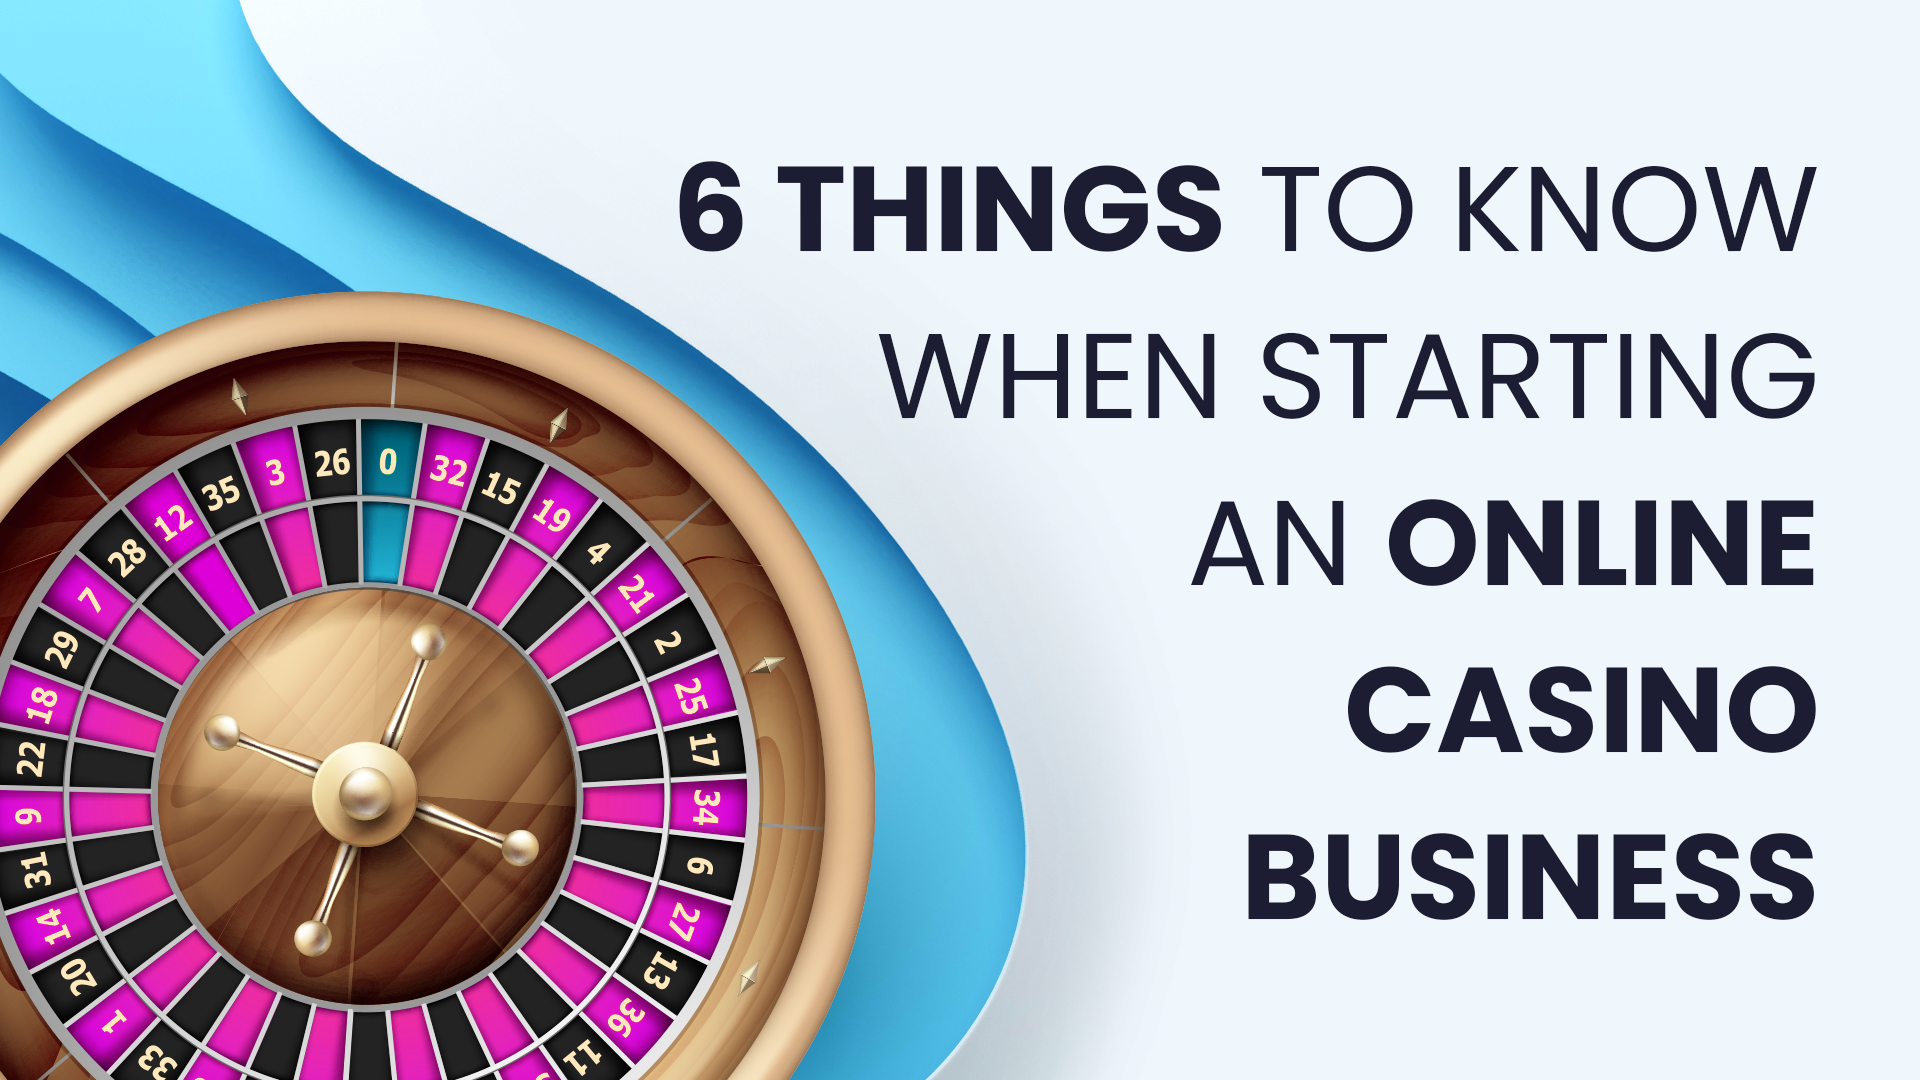 6 Things to Know When Starting an Online Casino Business